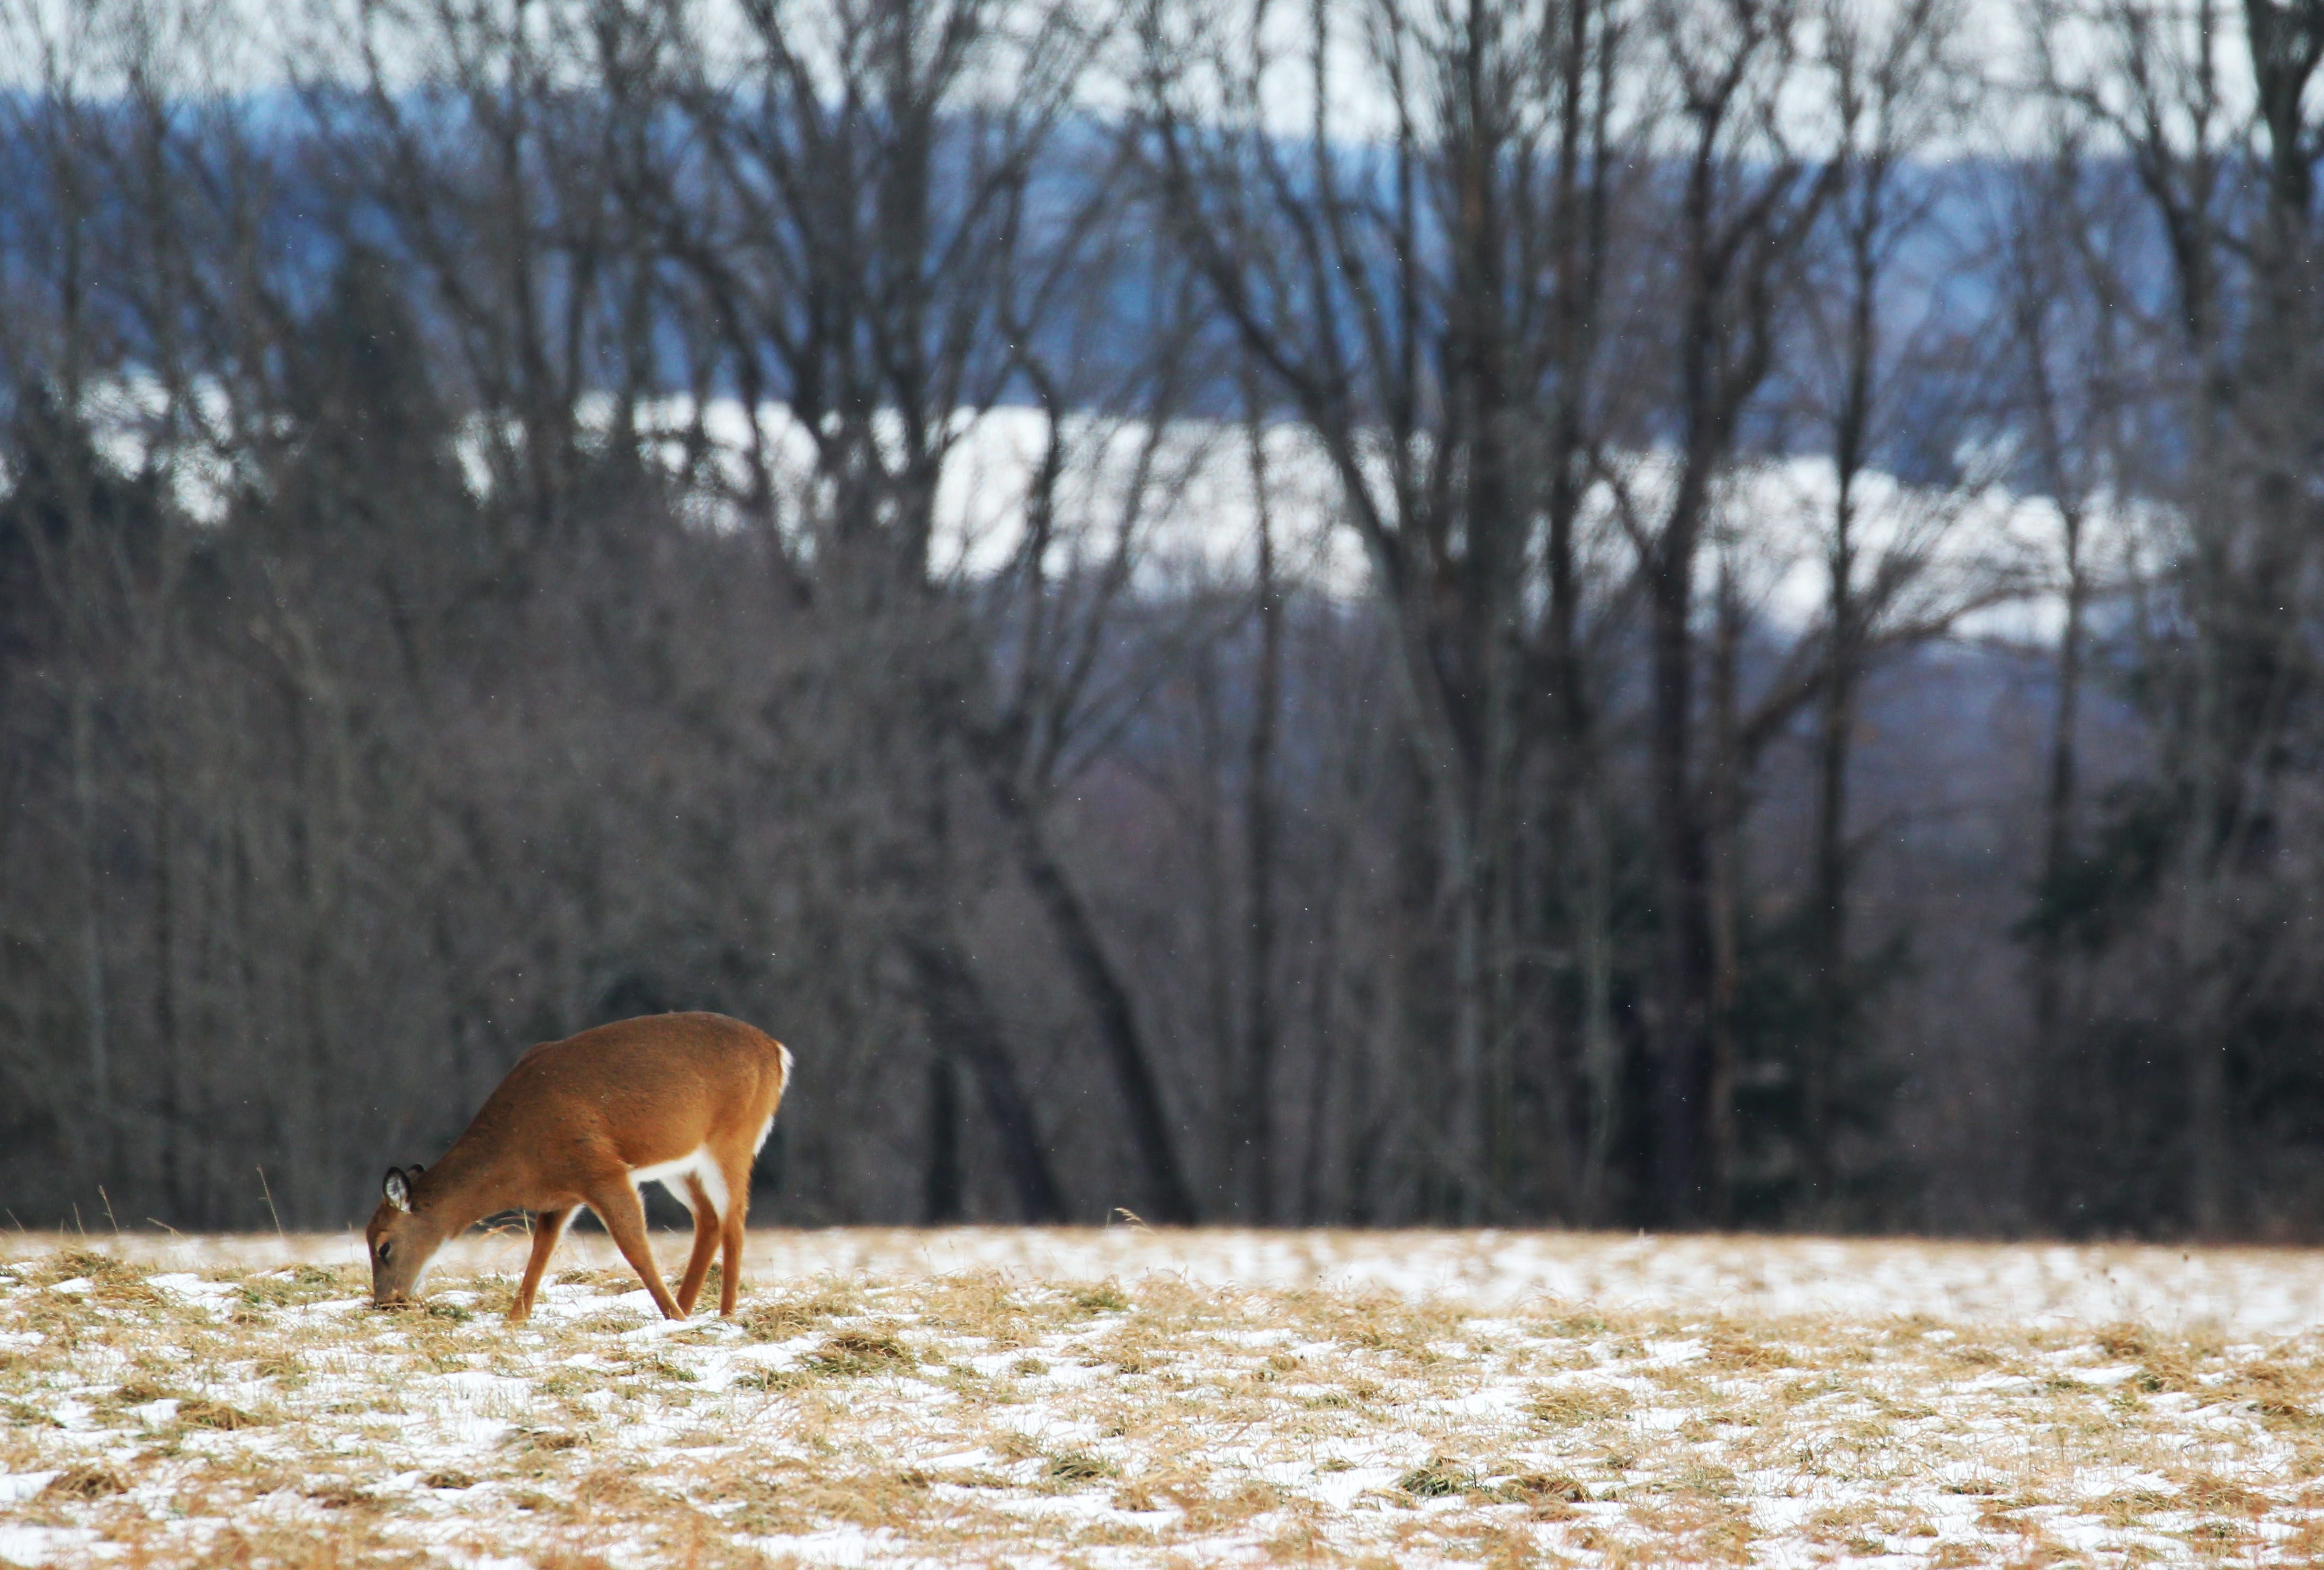 A deer feeds in a field on Knox Rd in East Aurora Wednesday, January 20, 2016.   (Mark Mulville/Buffalo News)